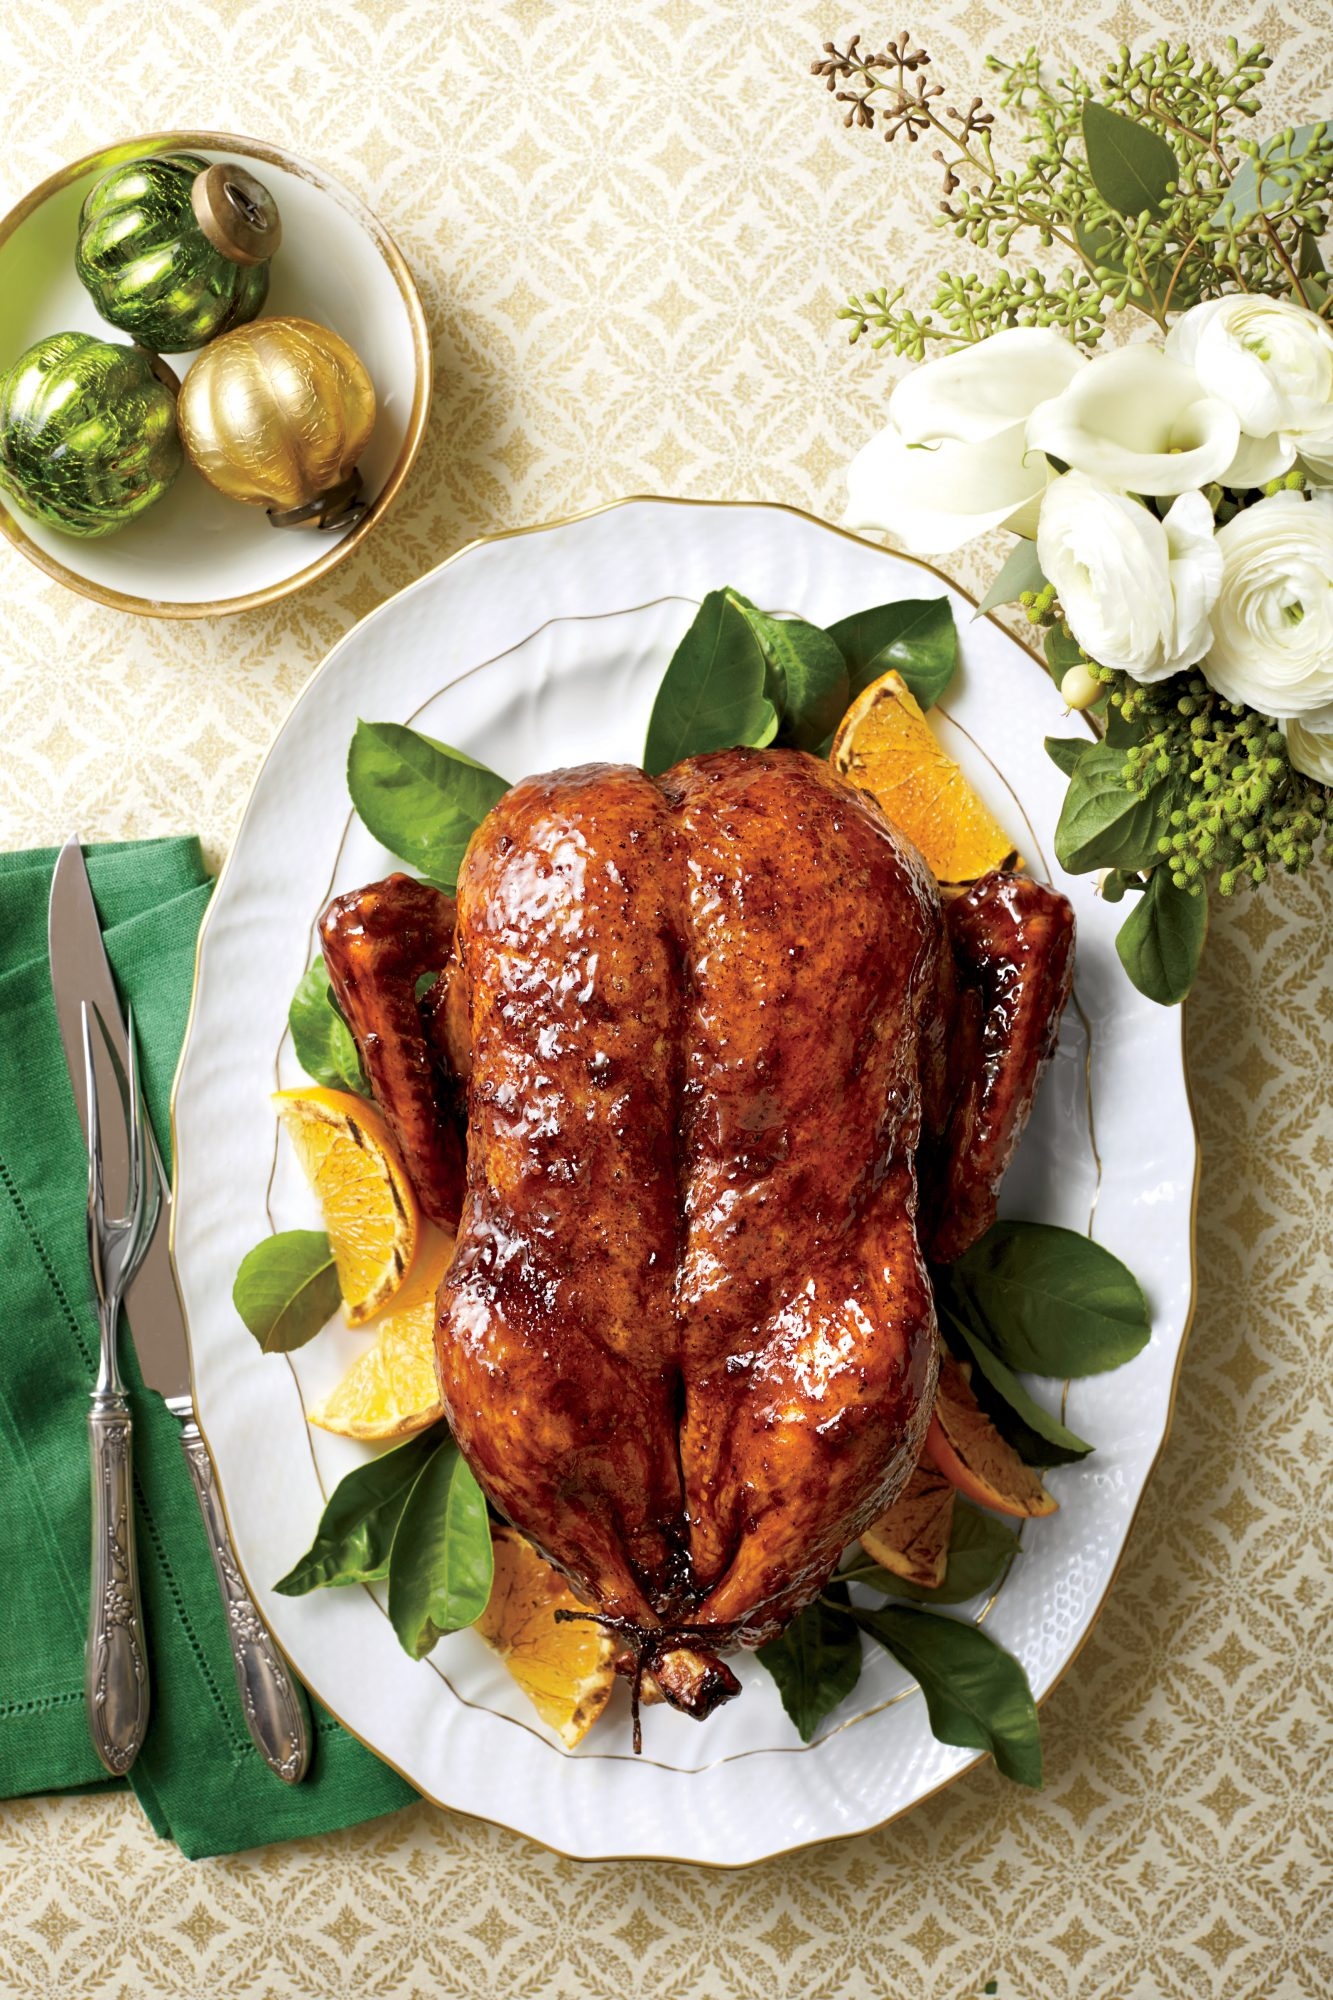 Roasted Duck with Orange-Bourbon-Molasses